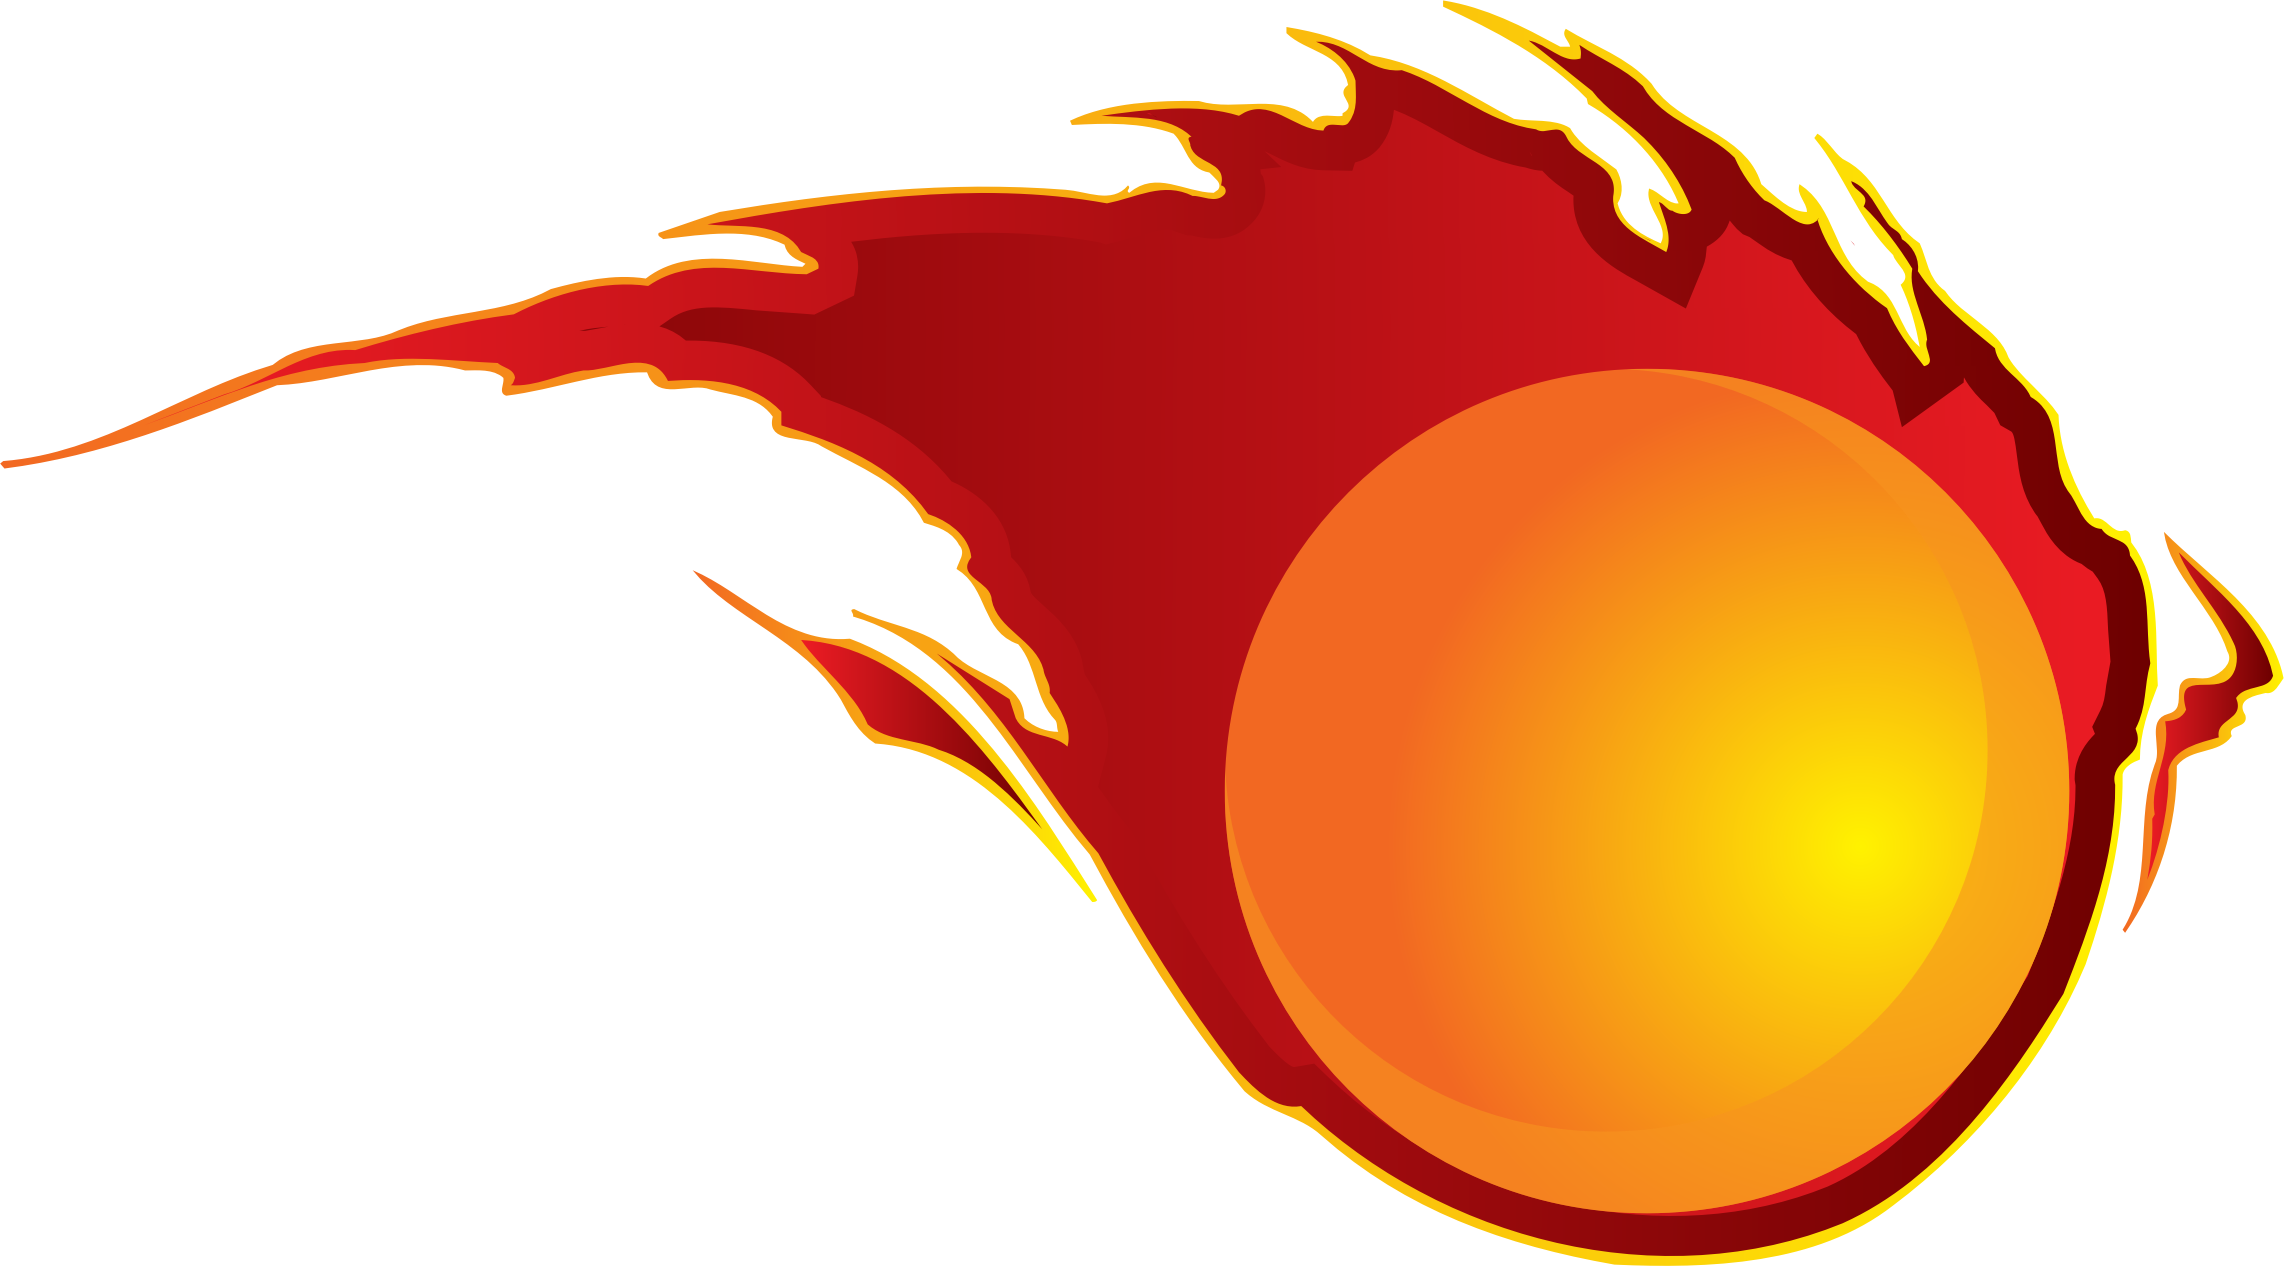 Download Fireball High-quality Png image #46734